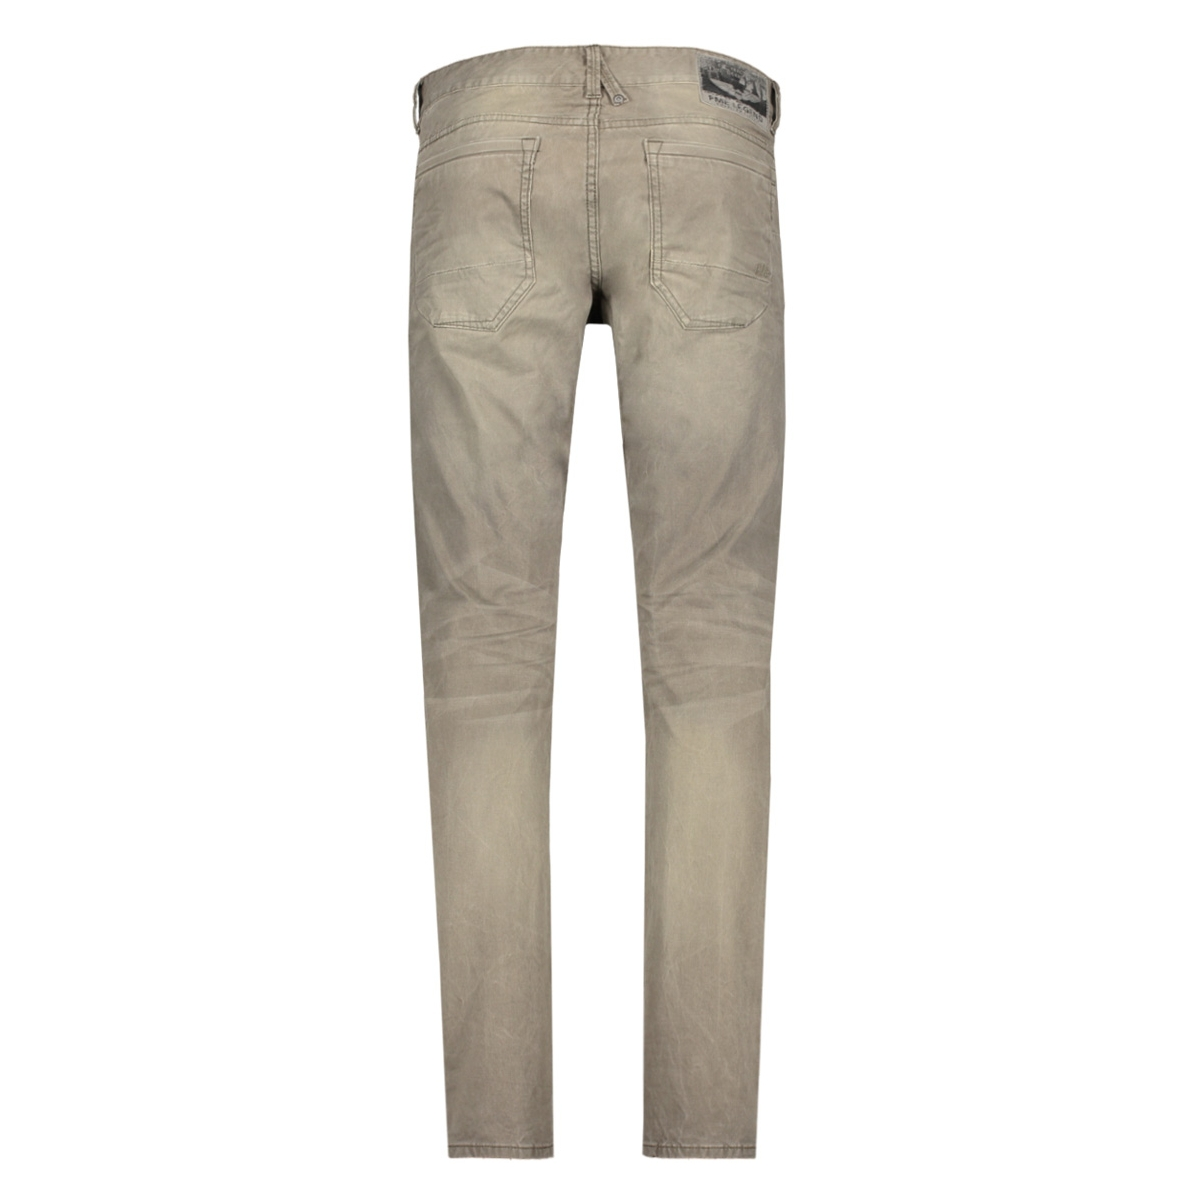 nightflight ptr175123 pme legend broek 7950